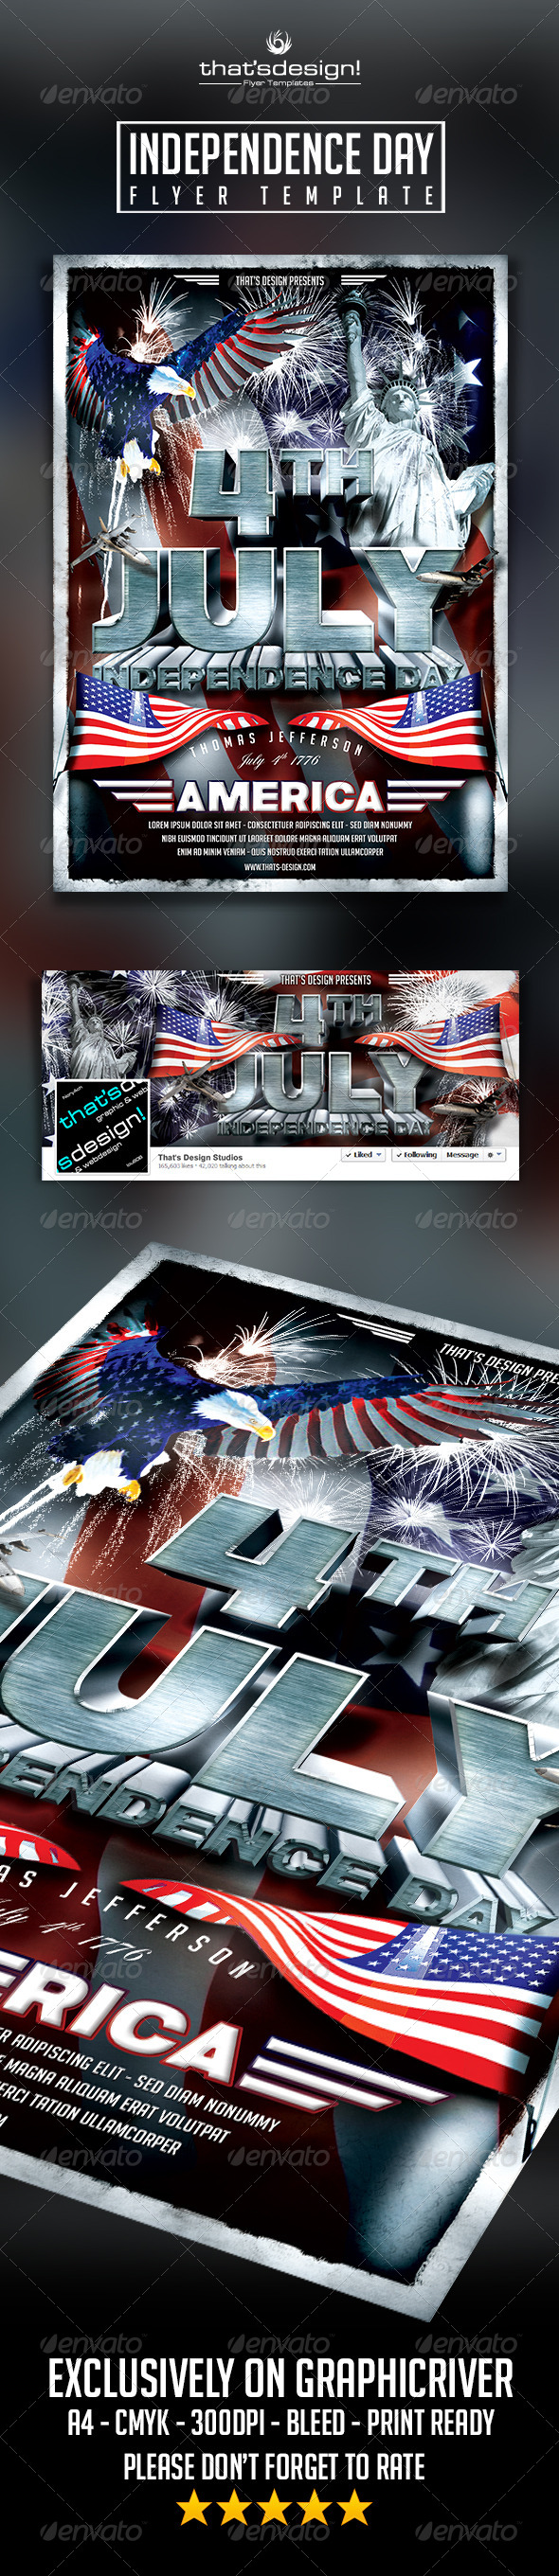 July  Independence Day Flyer Template V  Flyer Template And